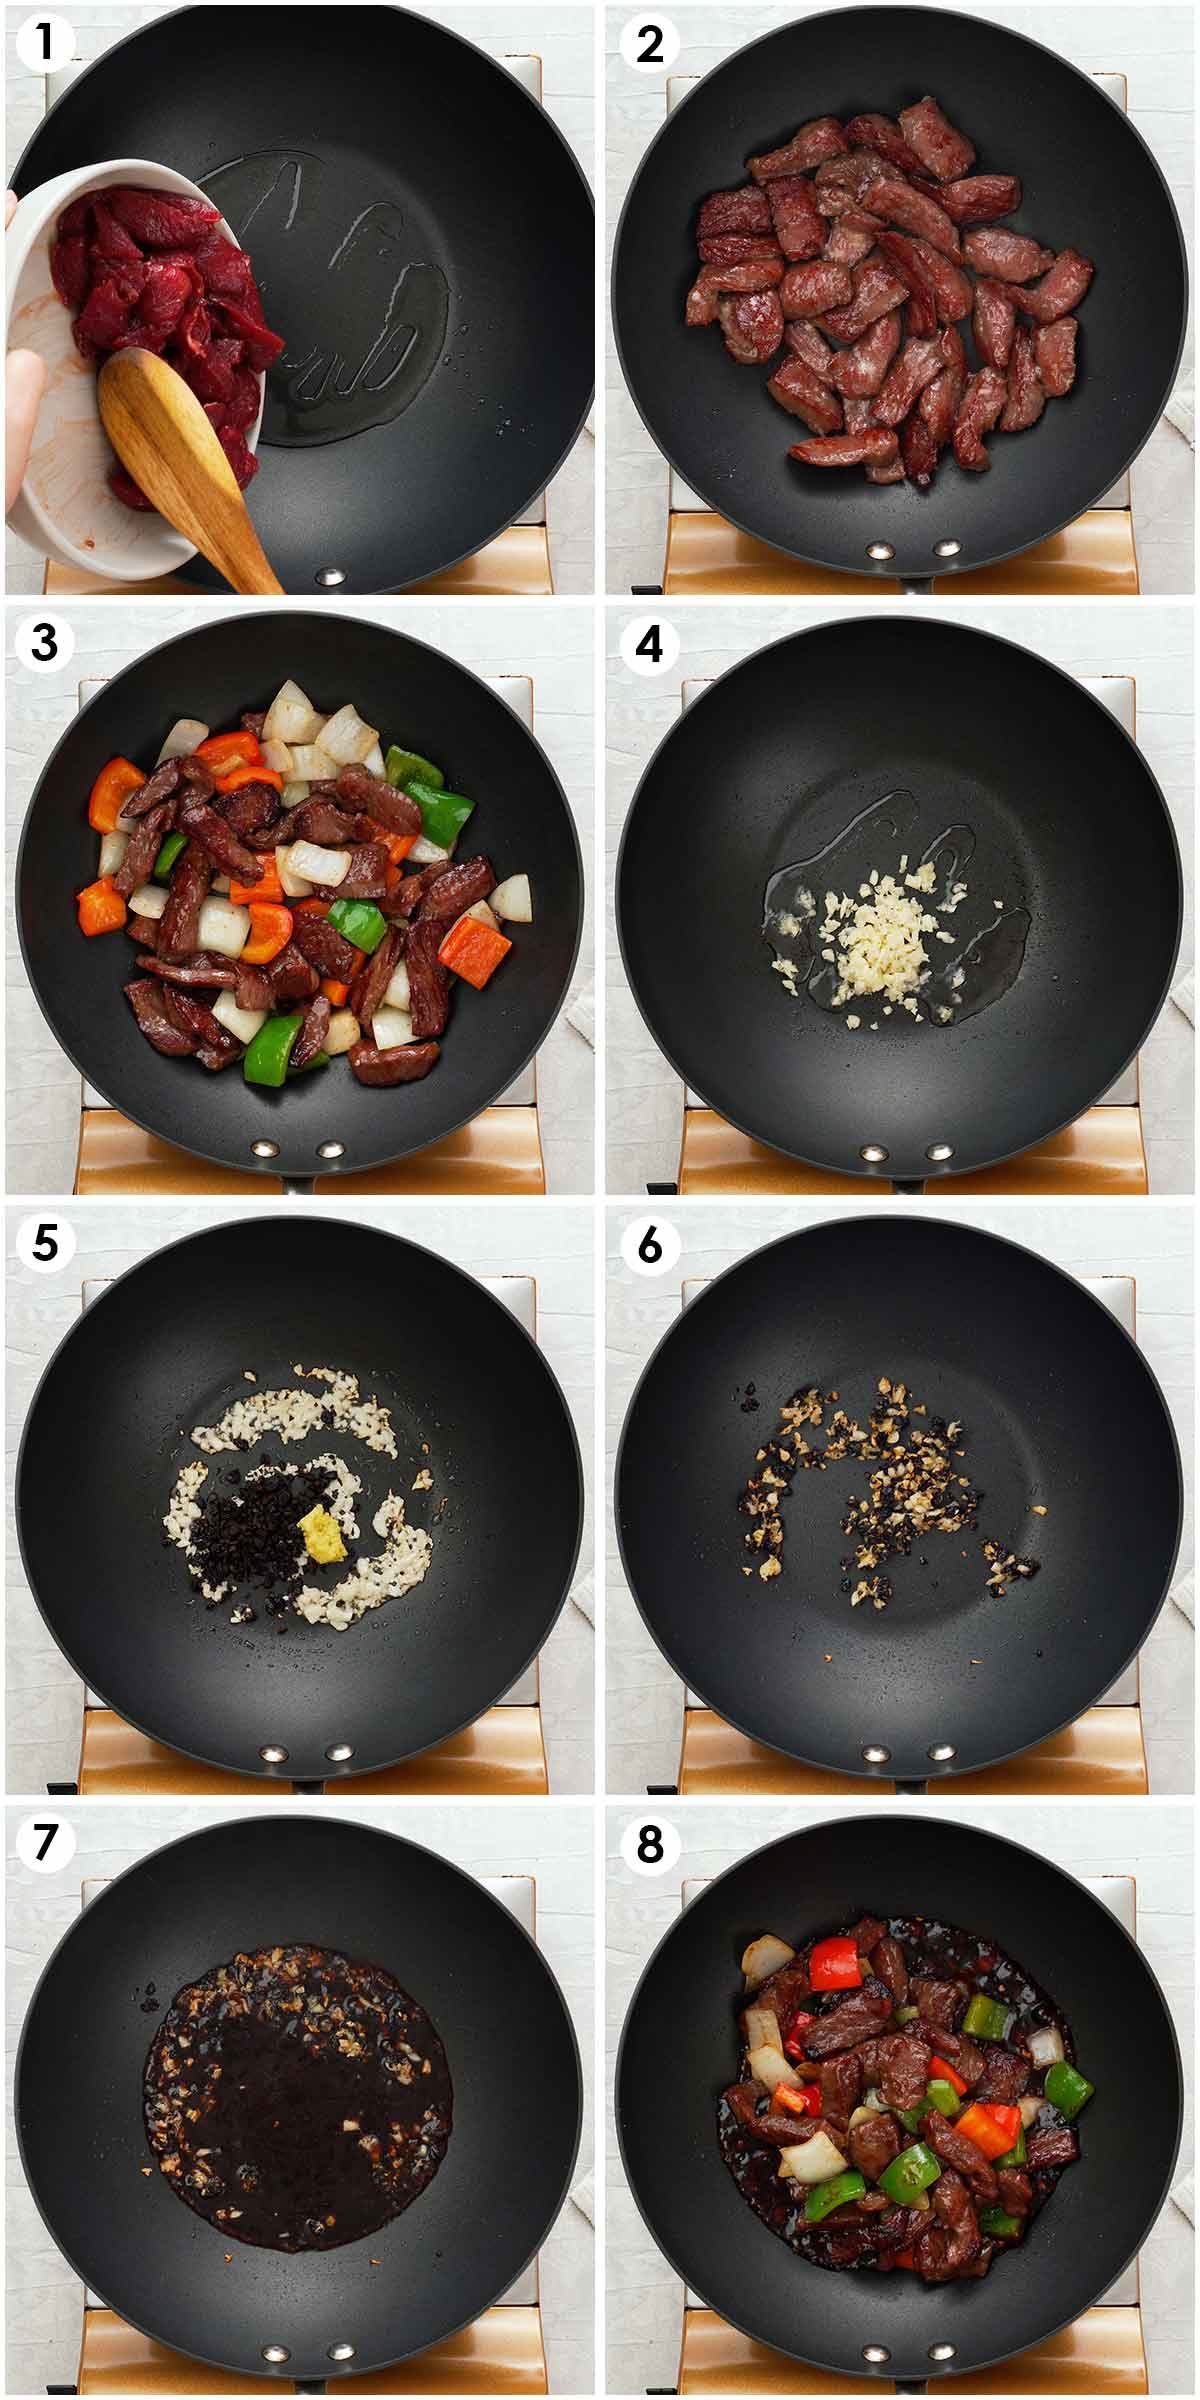 Eight image collage showing how to stir fry beef with black bean sauce.